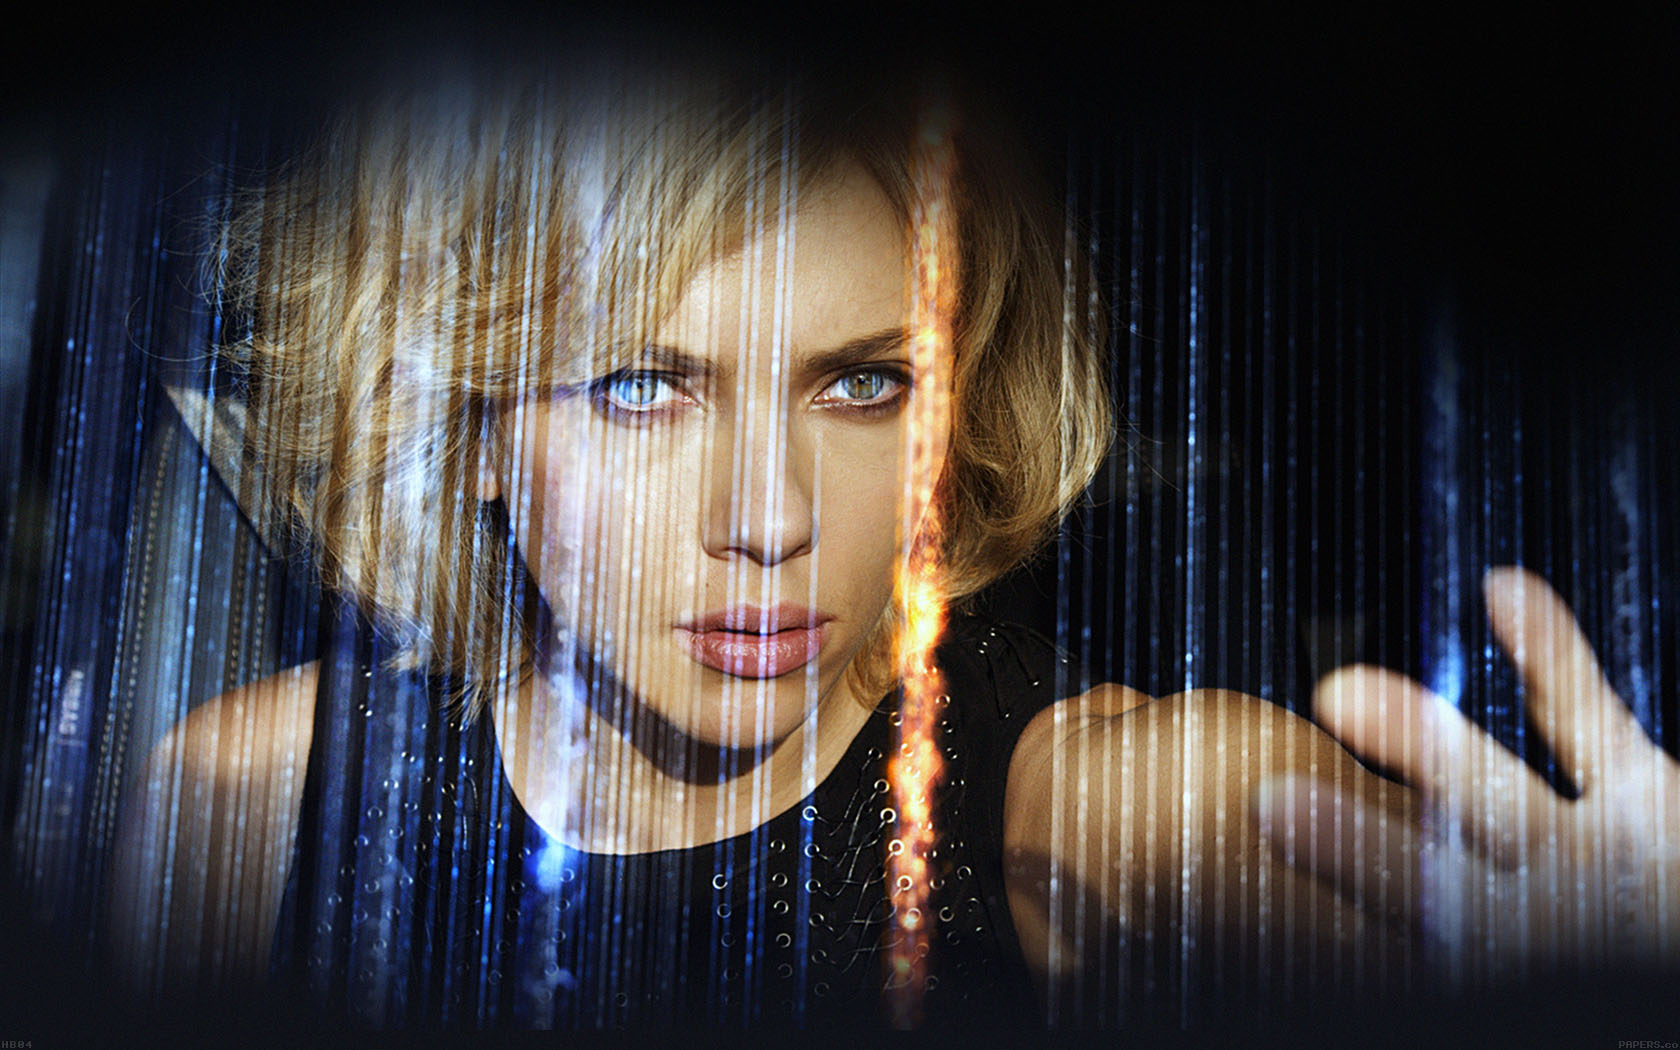 hb04-wallpaper-lucy-film-scarlett-johansson-sexy-face ...